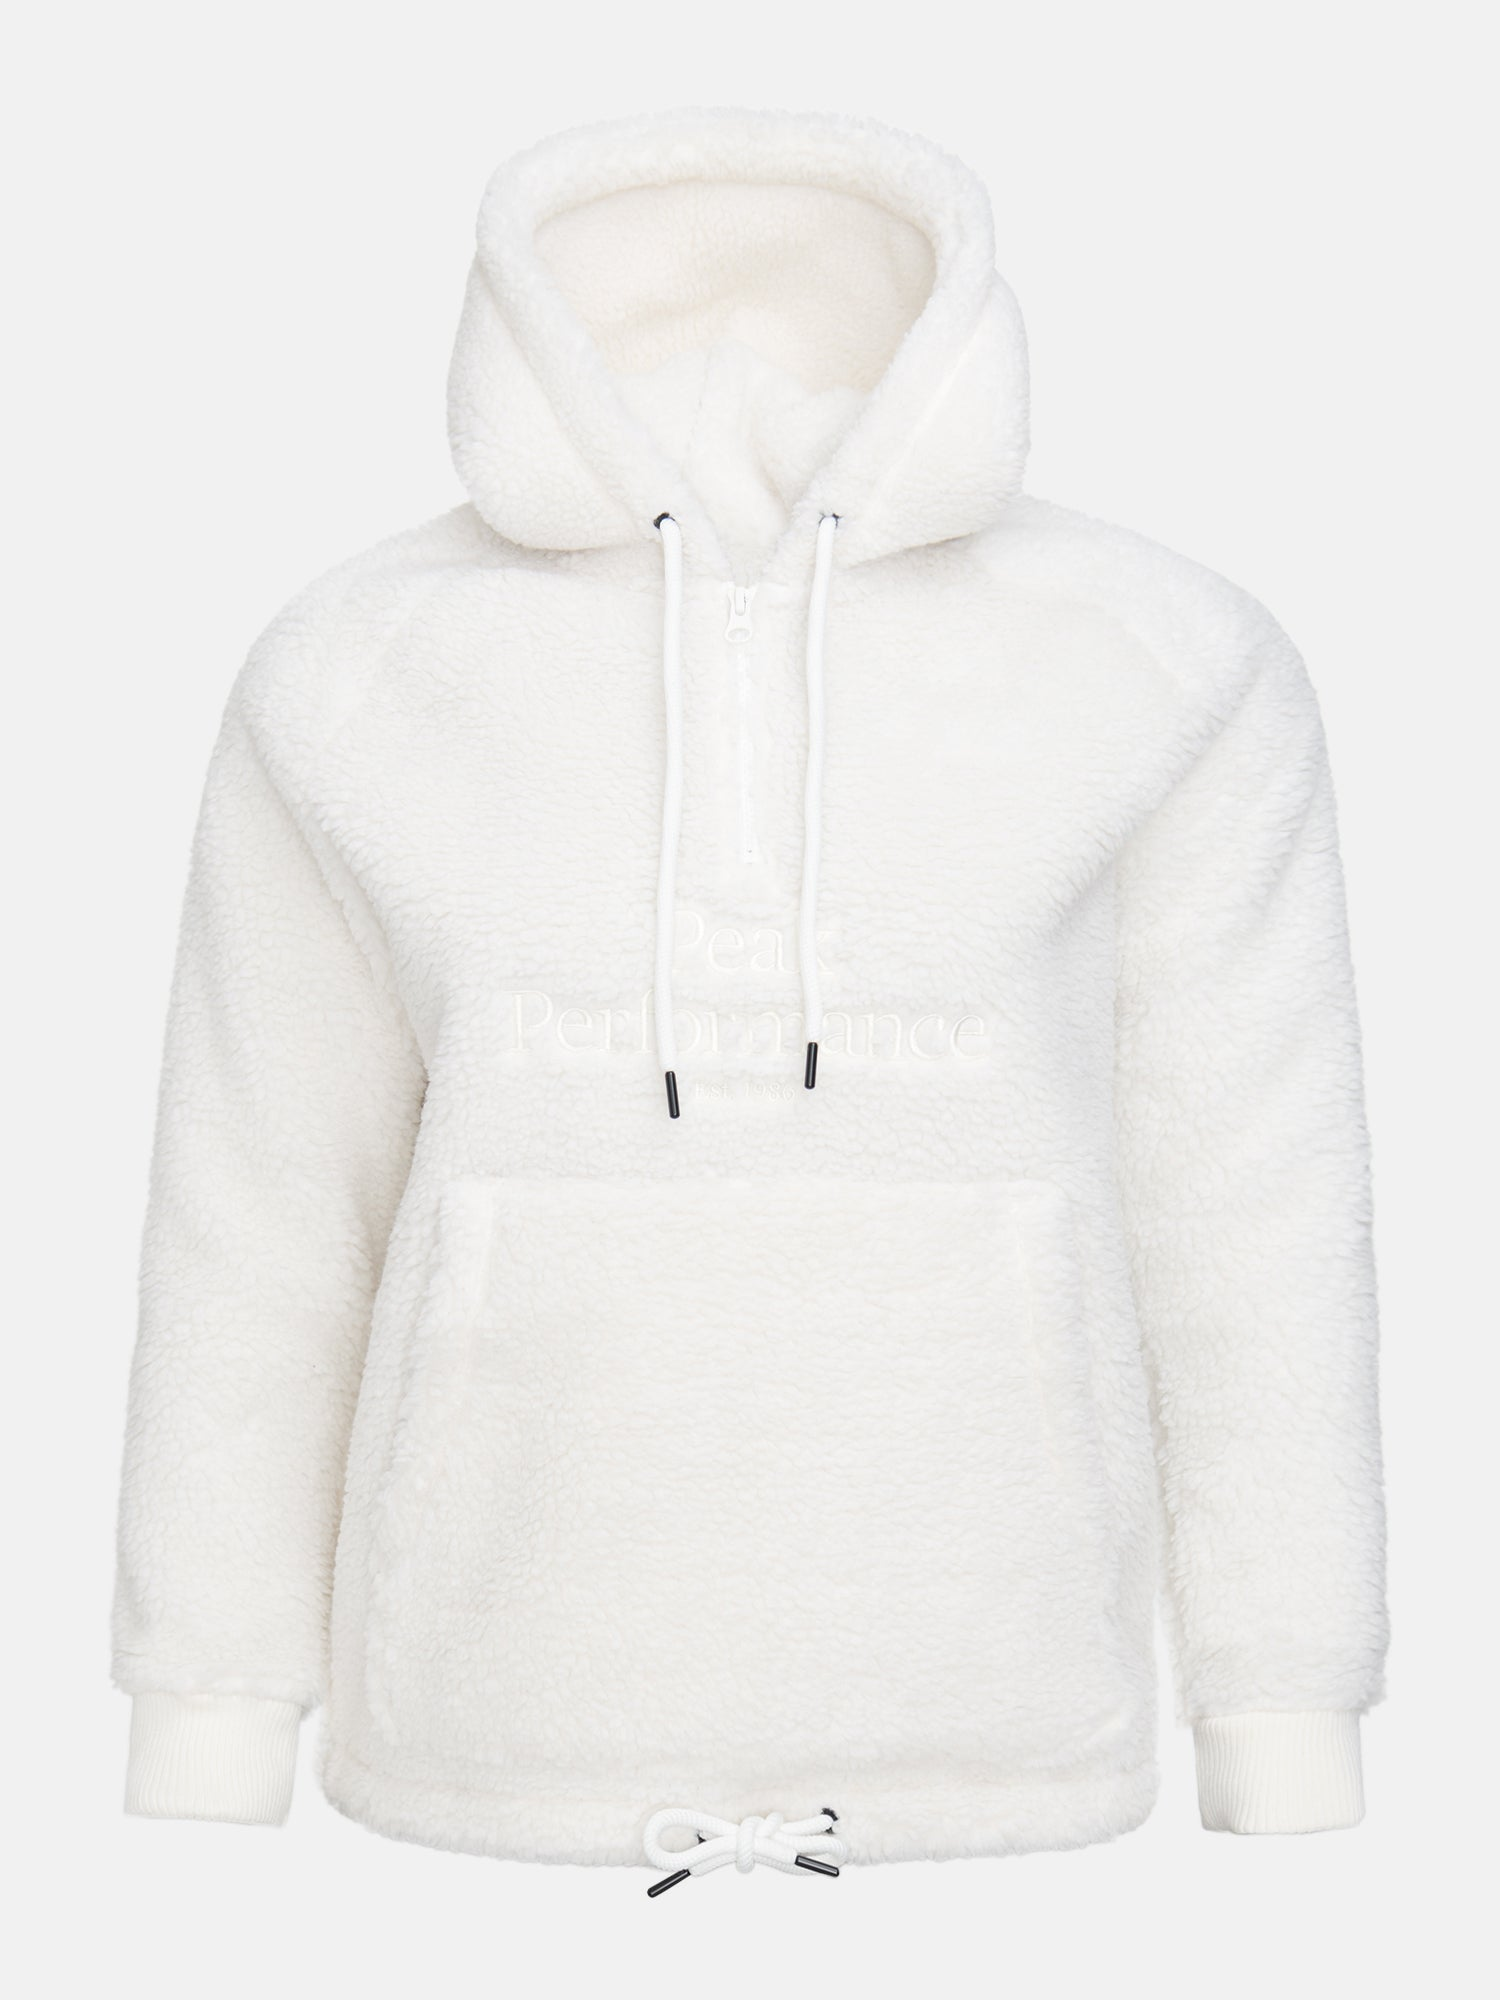 PEAK PERFORMANCE DAM Original Pile Zip Hoodie